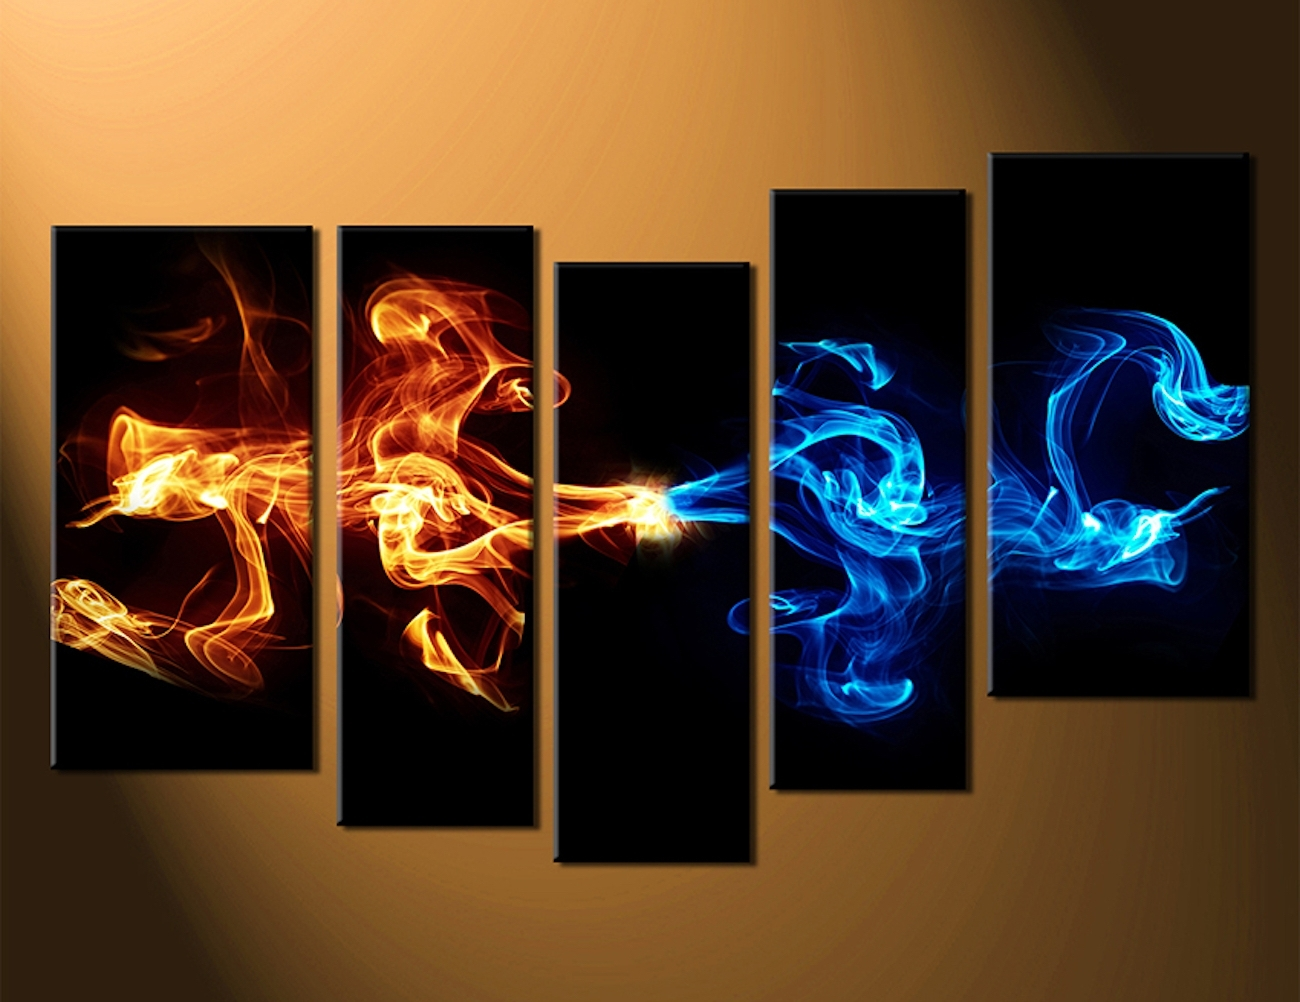 Widely Used Abstract 5 Piece Smoke Canvas Wall Art » Gadget Flow Within 5 Piece Wall Art (View 2 of 15)